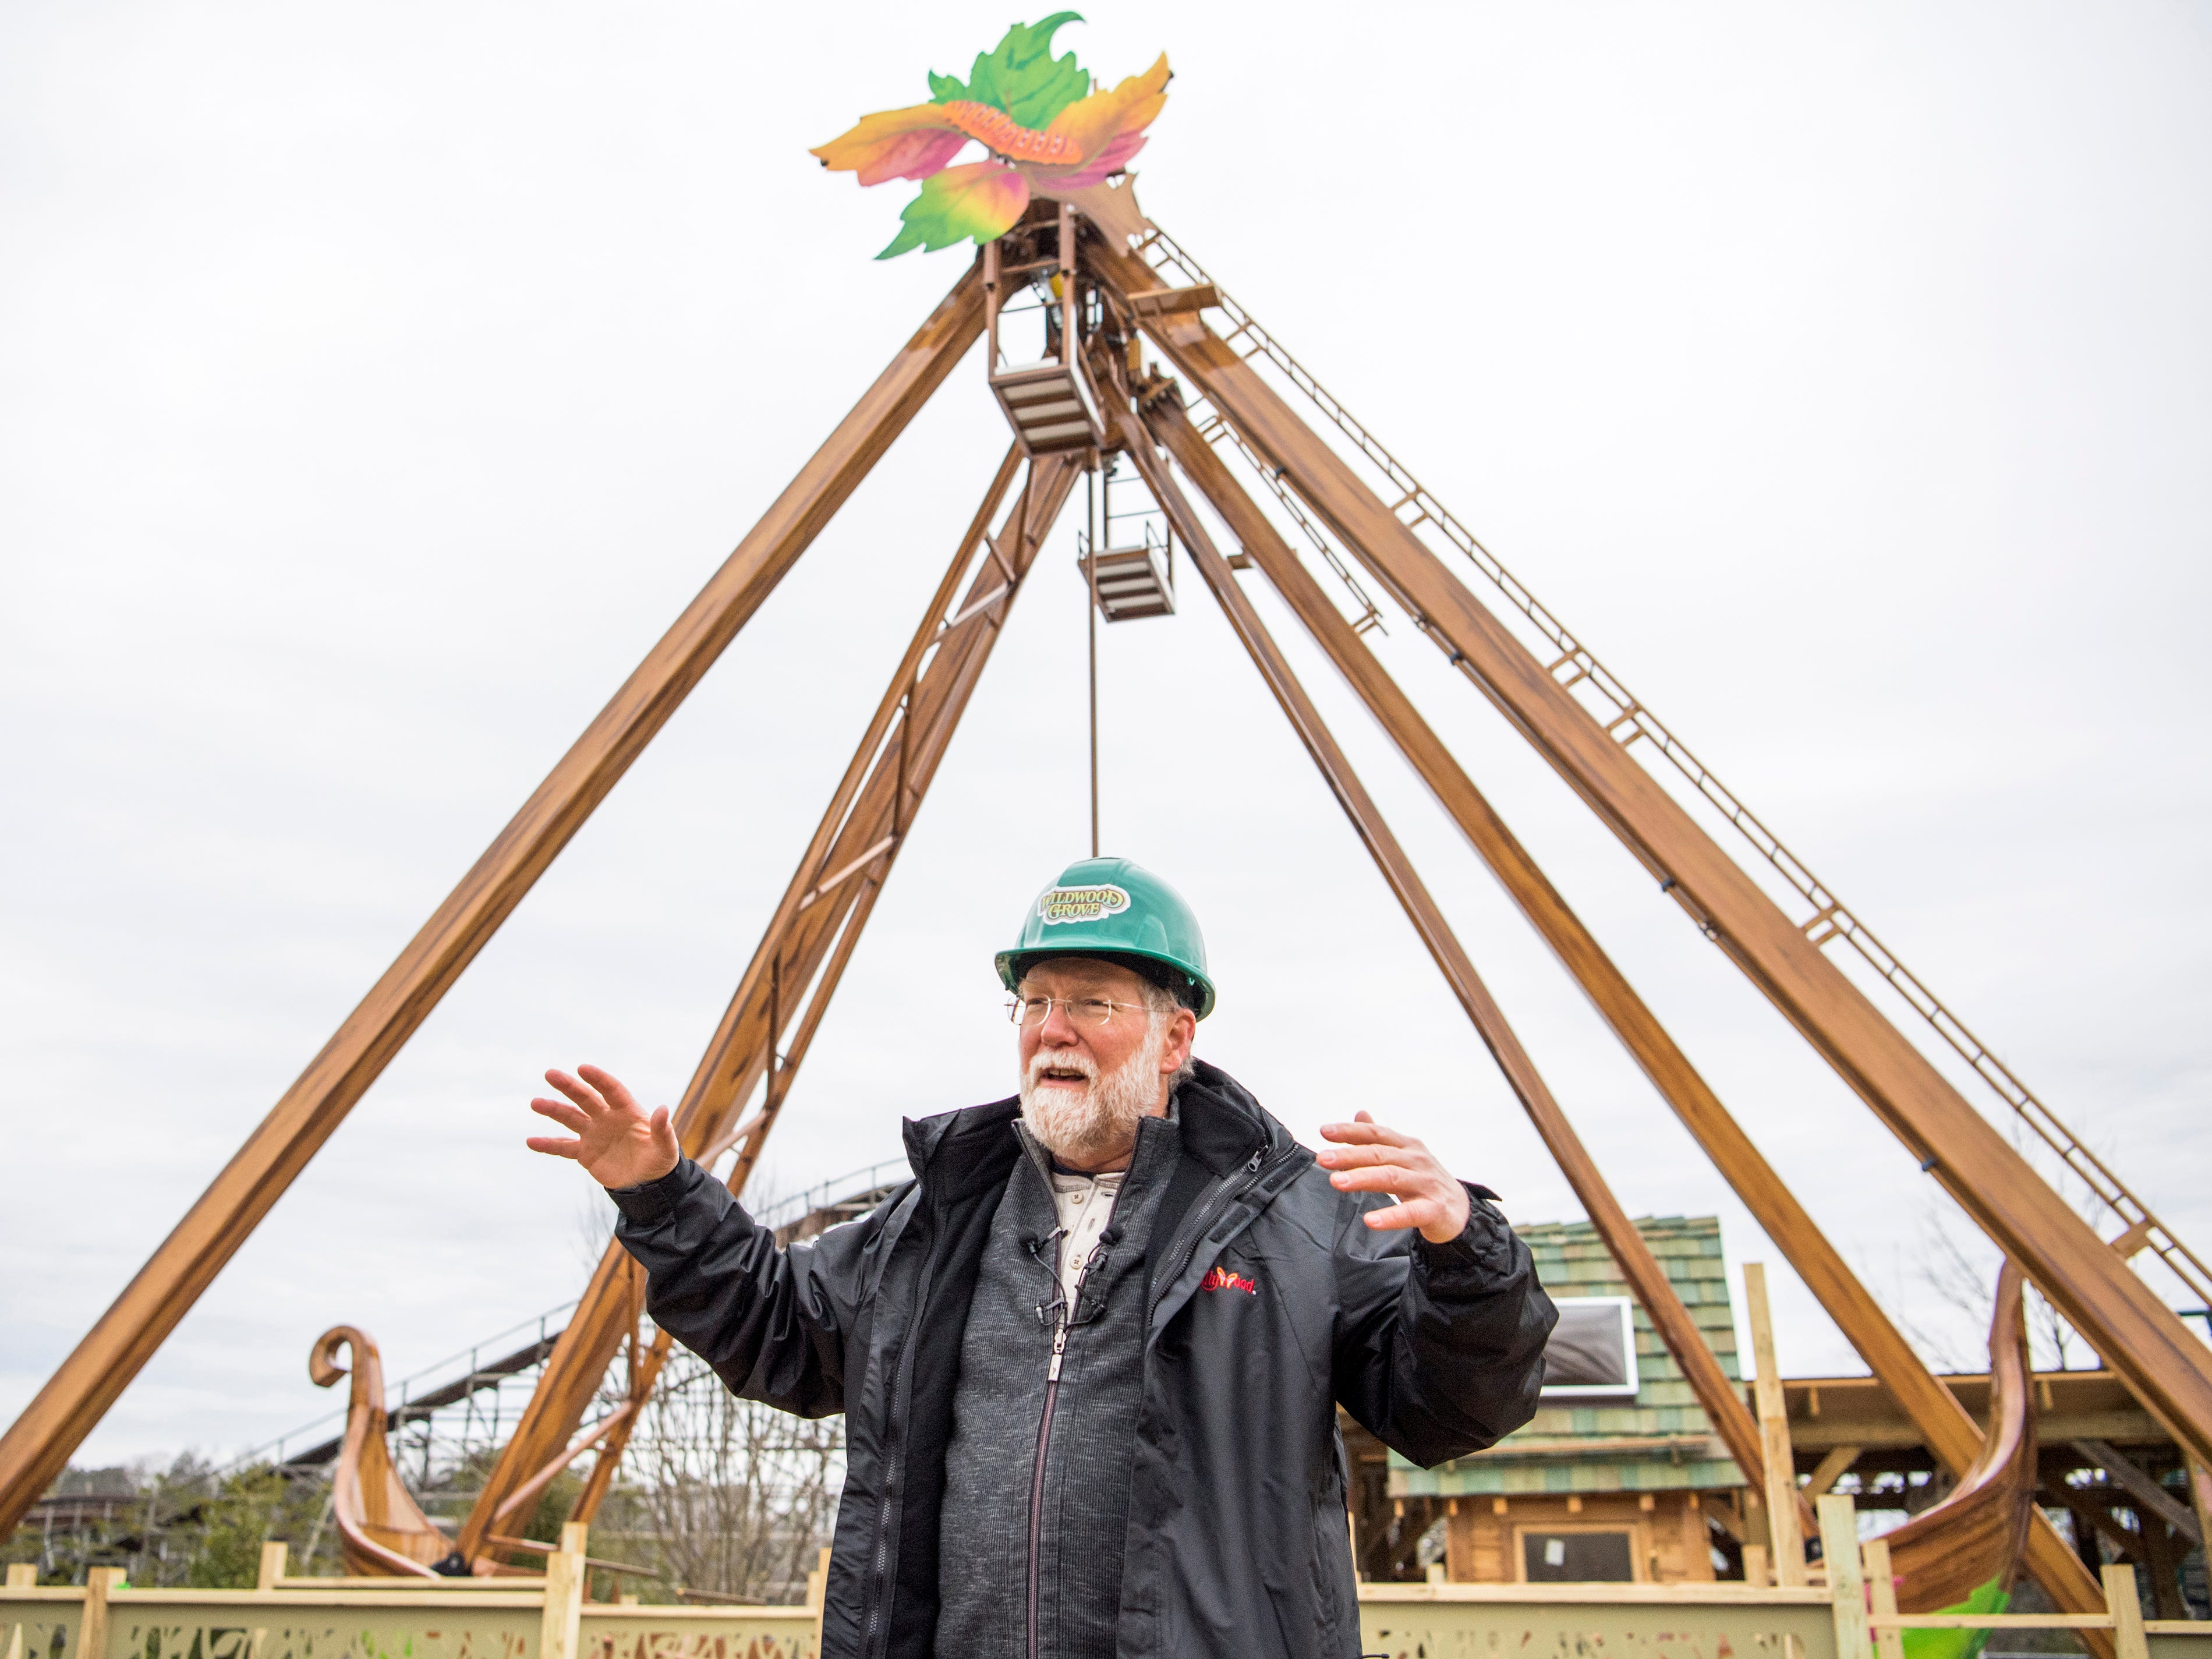 Patrick Brennan, art director for Dollywood's new Wildwood Grove area, points out features on the Giant Tree Swing ride during a construction site tour on Tuesday, February 19, 2019.